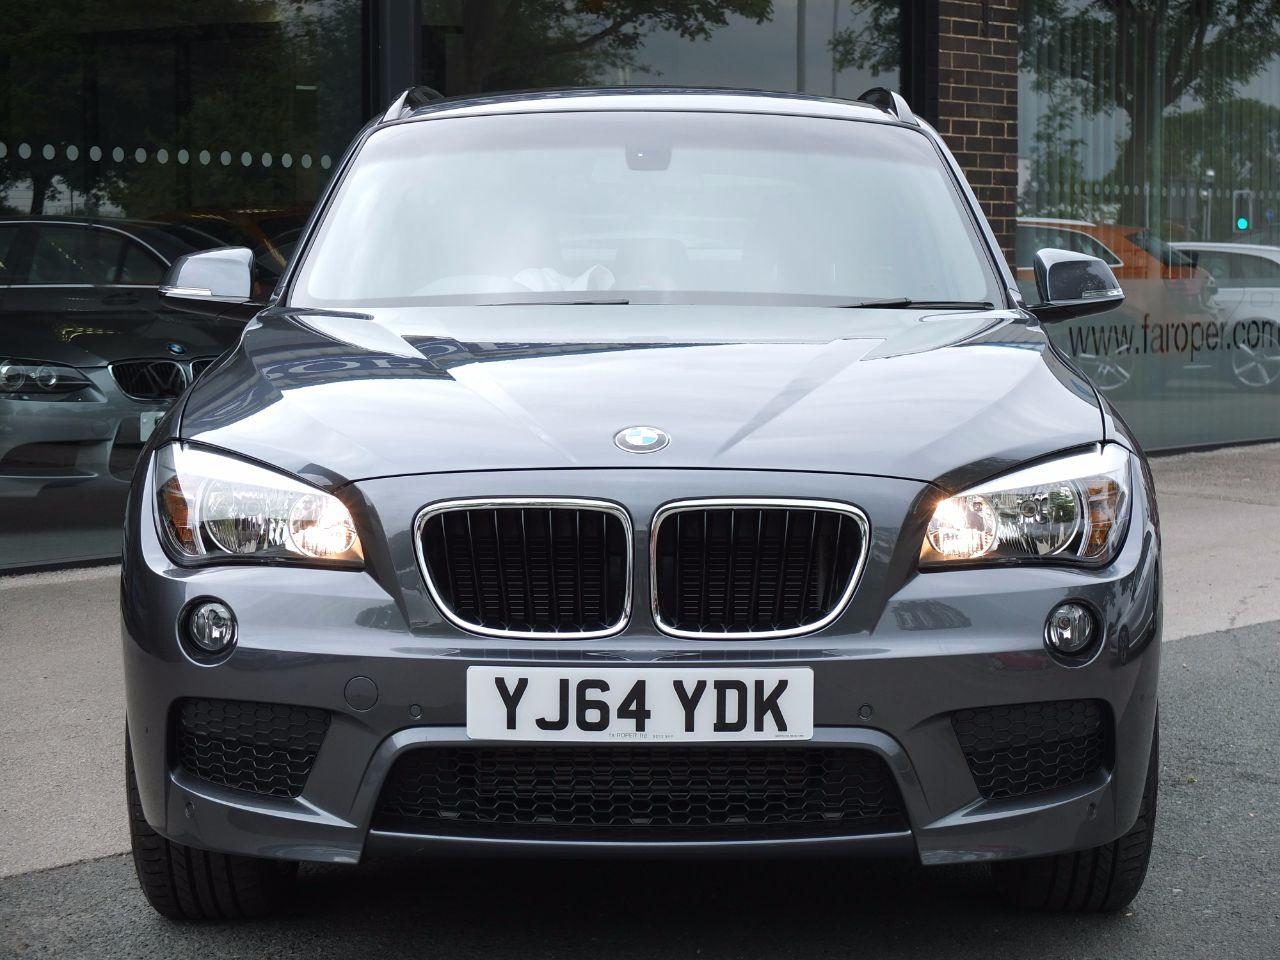 BMW X1 2.0 xDrive 20d M Sport Auto 4WD ++Spec Estate Diesel Mineral Grey Metallic